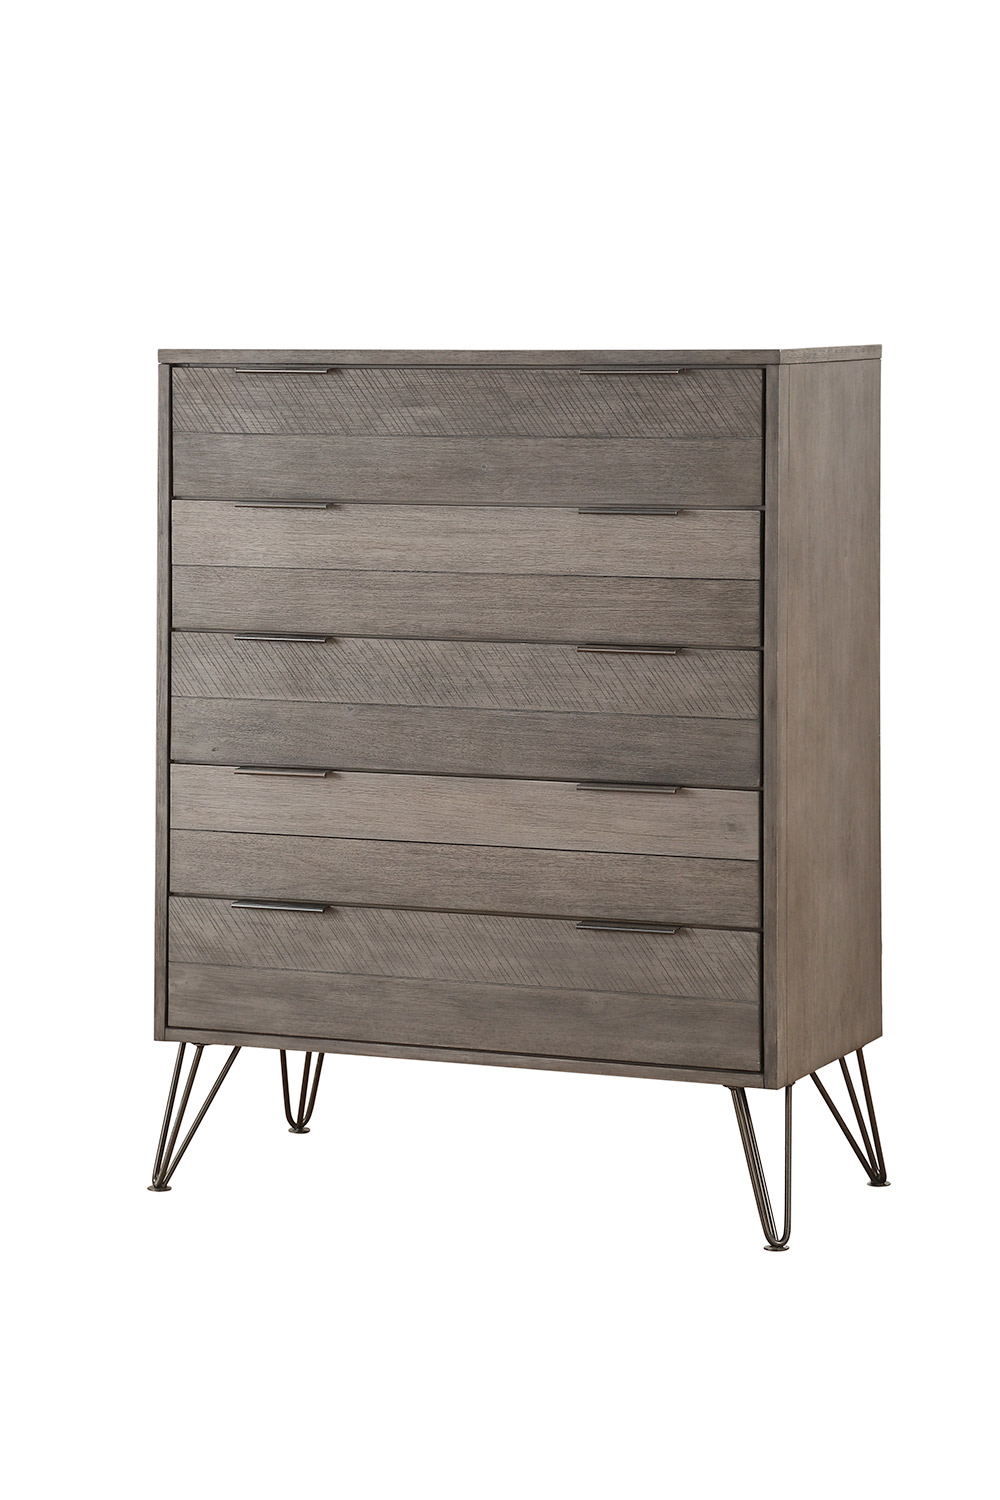 Homelegance Urbanite Chest - Brown-Gray